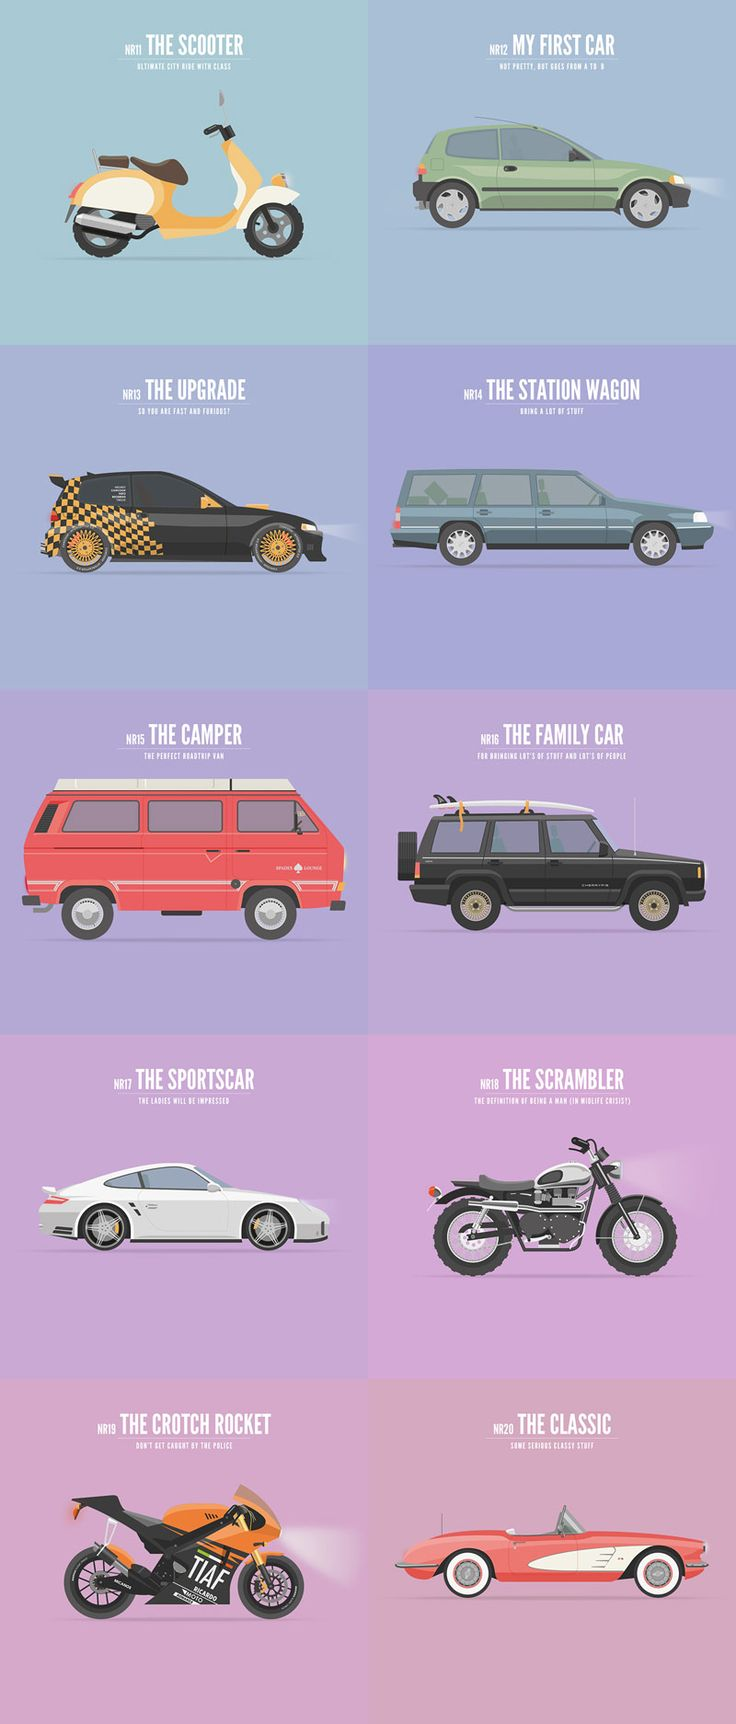 Life on Wheels illustrations (part 2) by Freelance Interactive Designer and Motion Designer Richard Beerens in collaboration with Ronald Mica.